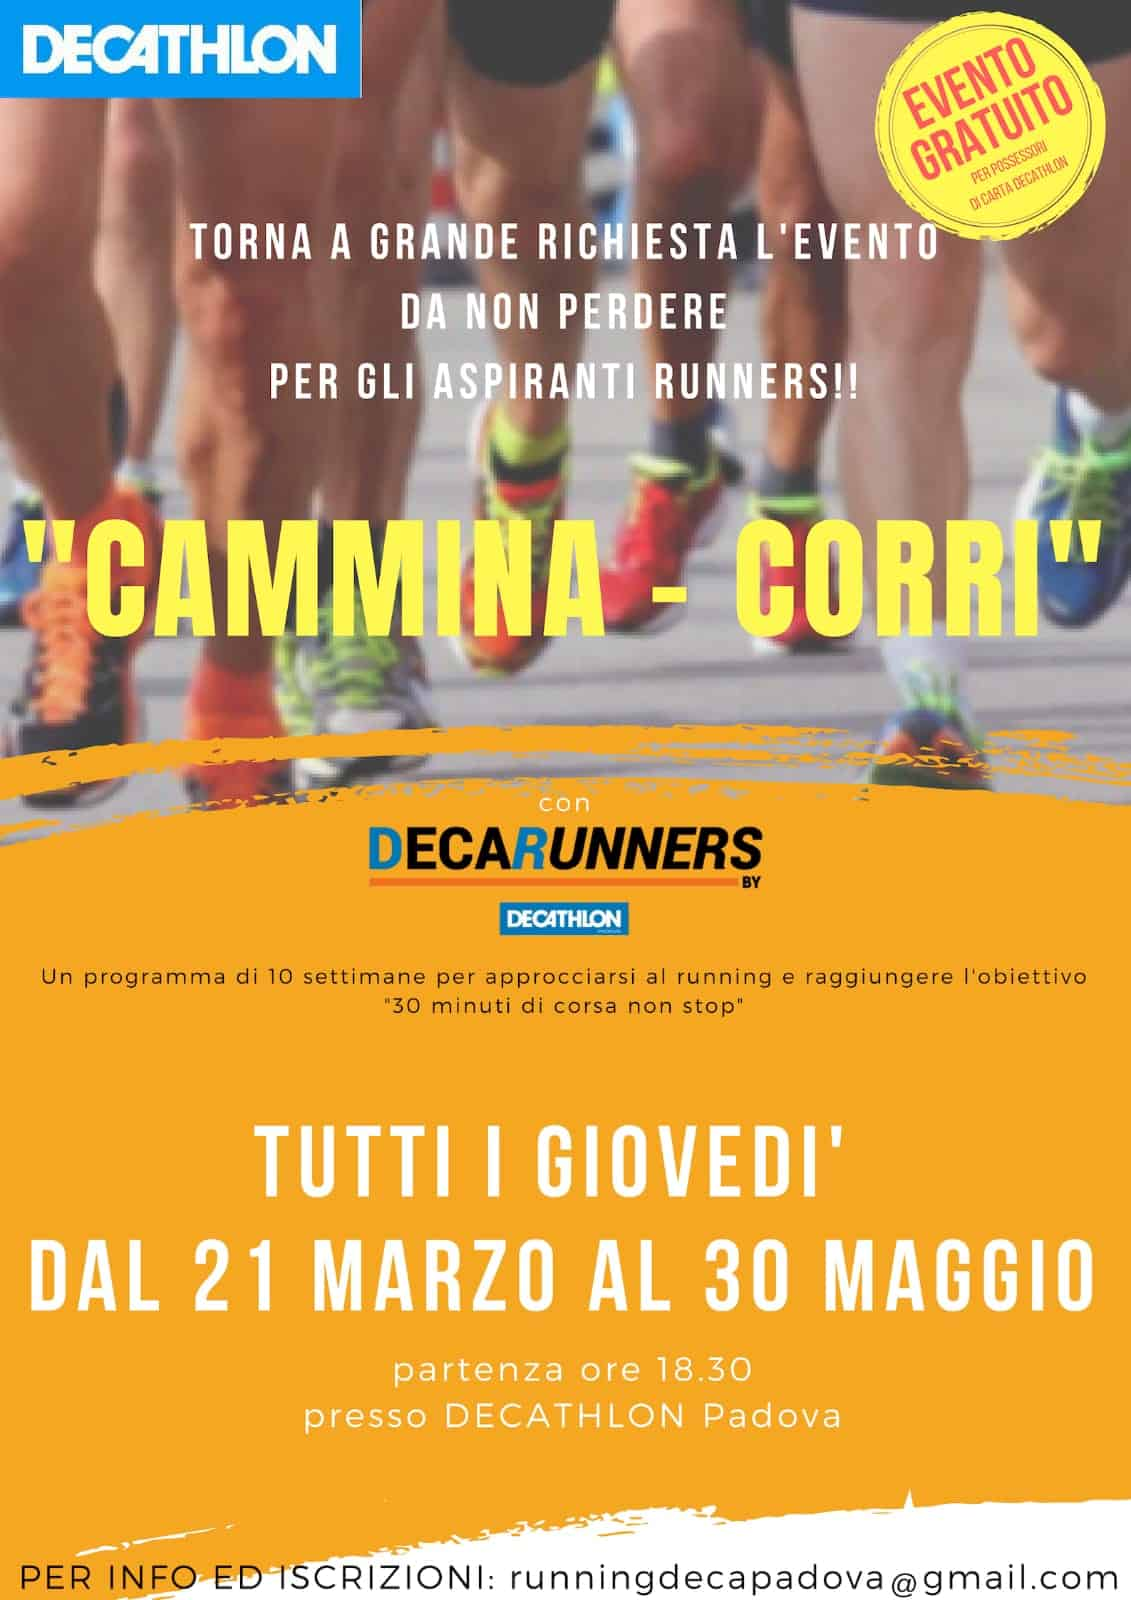 Evento CAMMINA – CORRI by Decathlon Padova